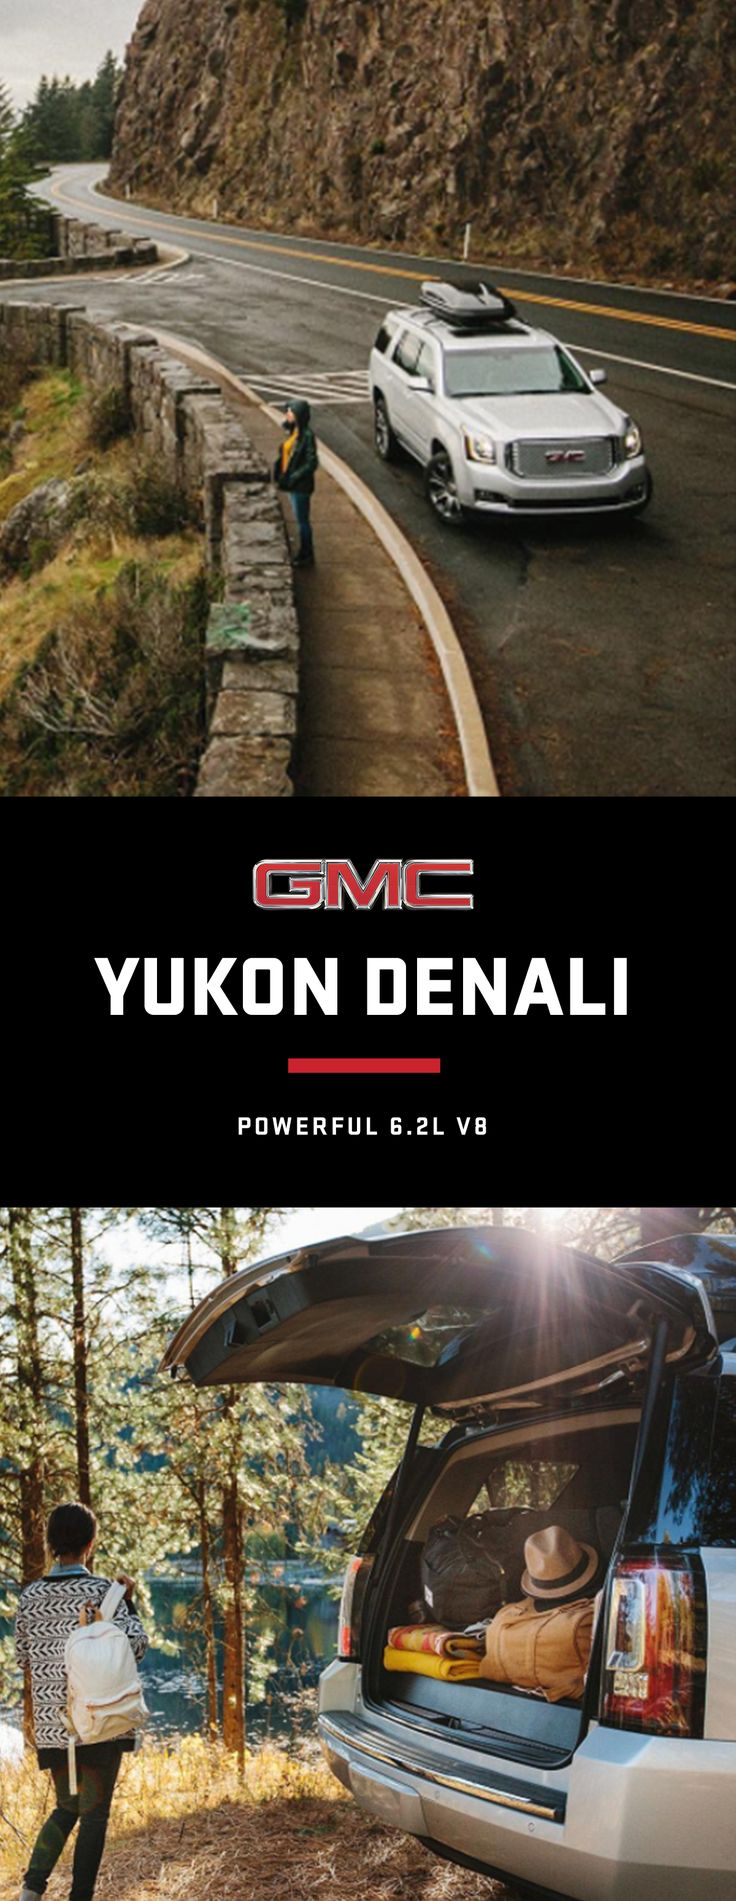 The 2018 yukon denali full size luxury suv features our most advanced 6 2 l v 8 engine yet engineered to let you go where you want